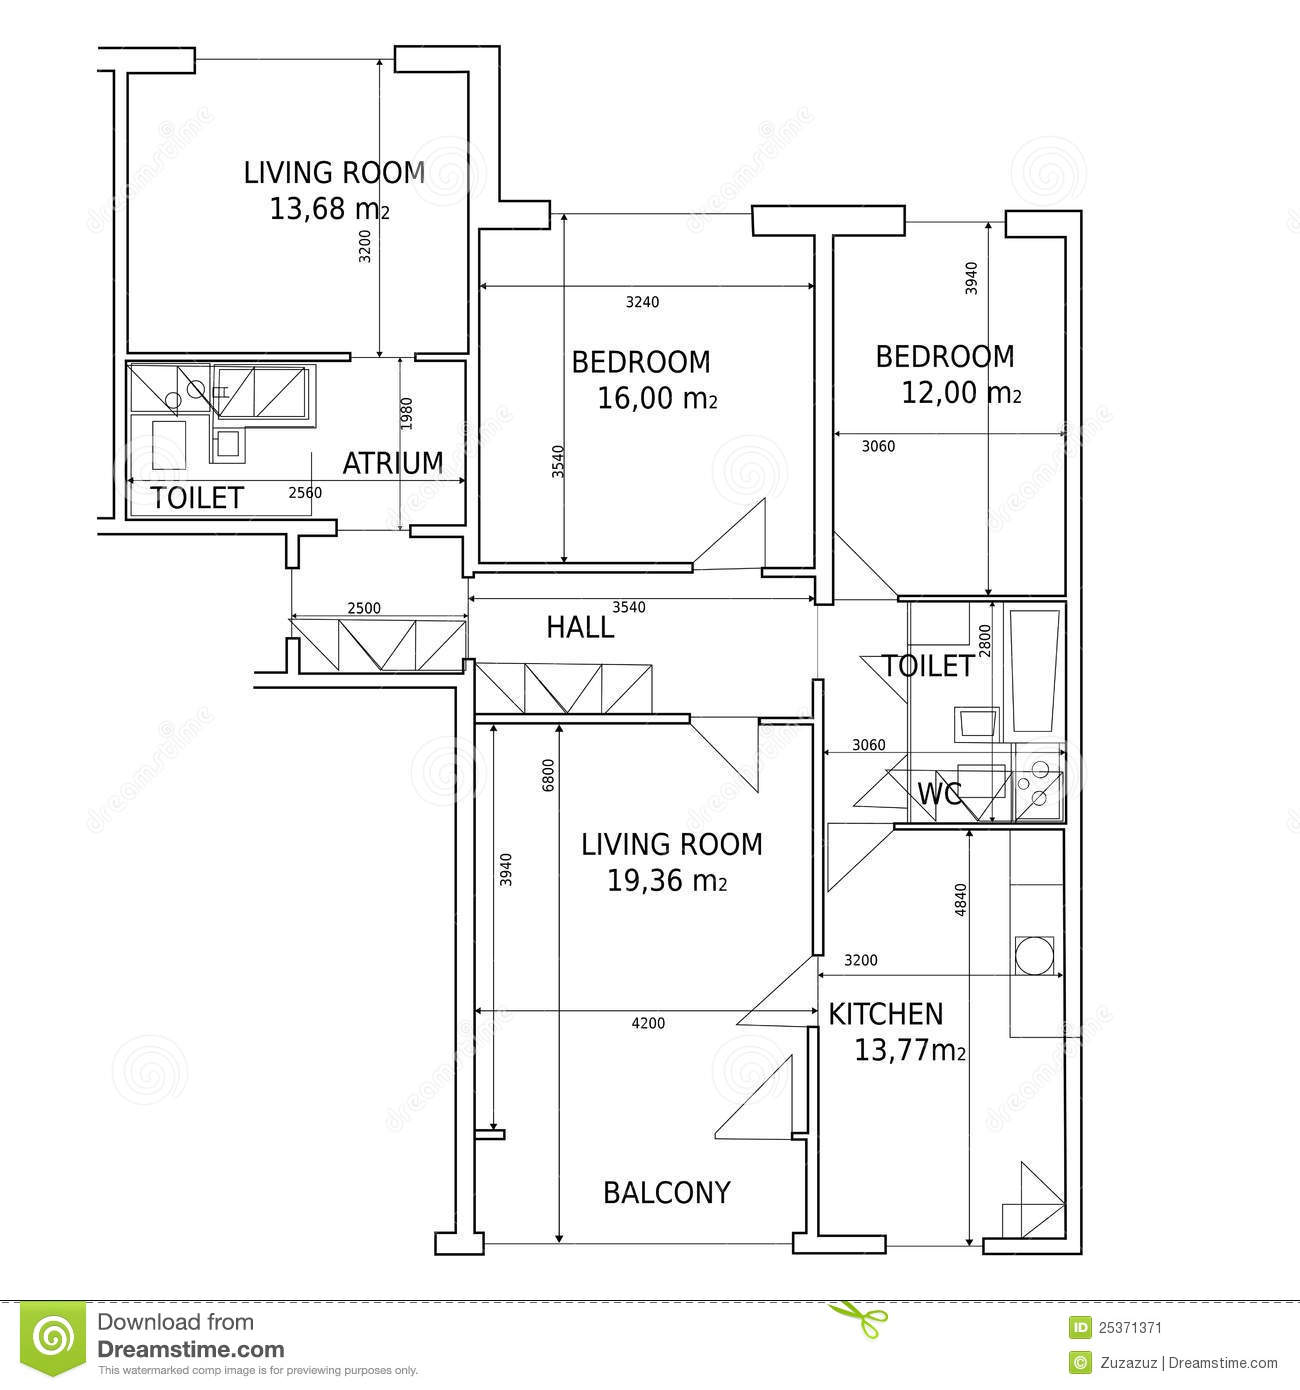 Hause plan of drawing building stock image image 25371371 - Build house plans online free concept ...